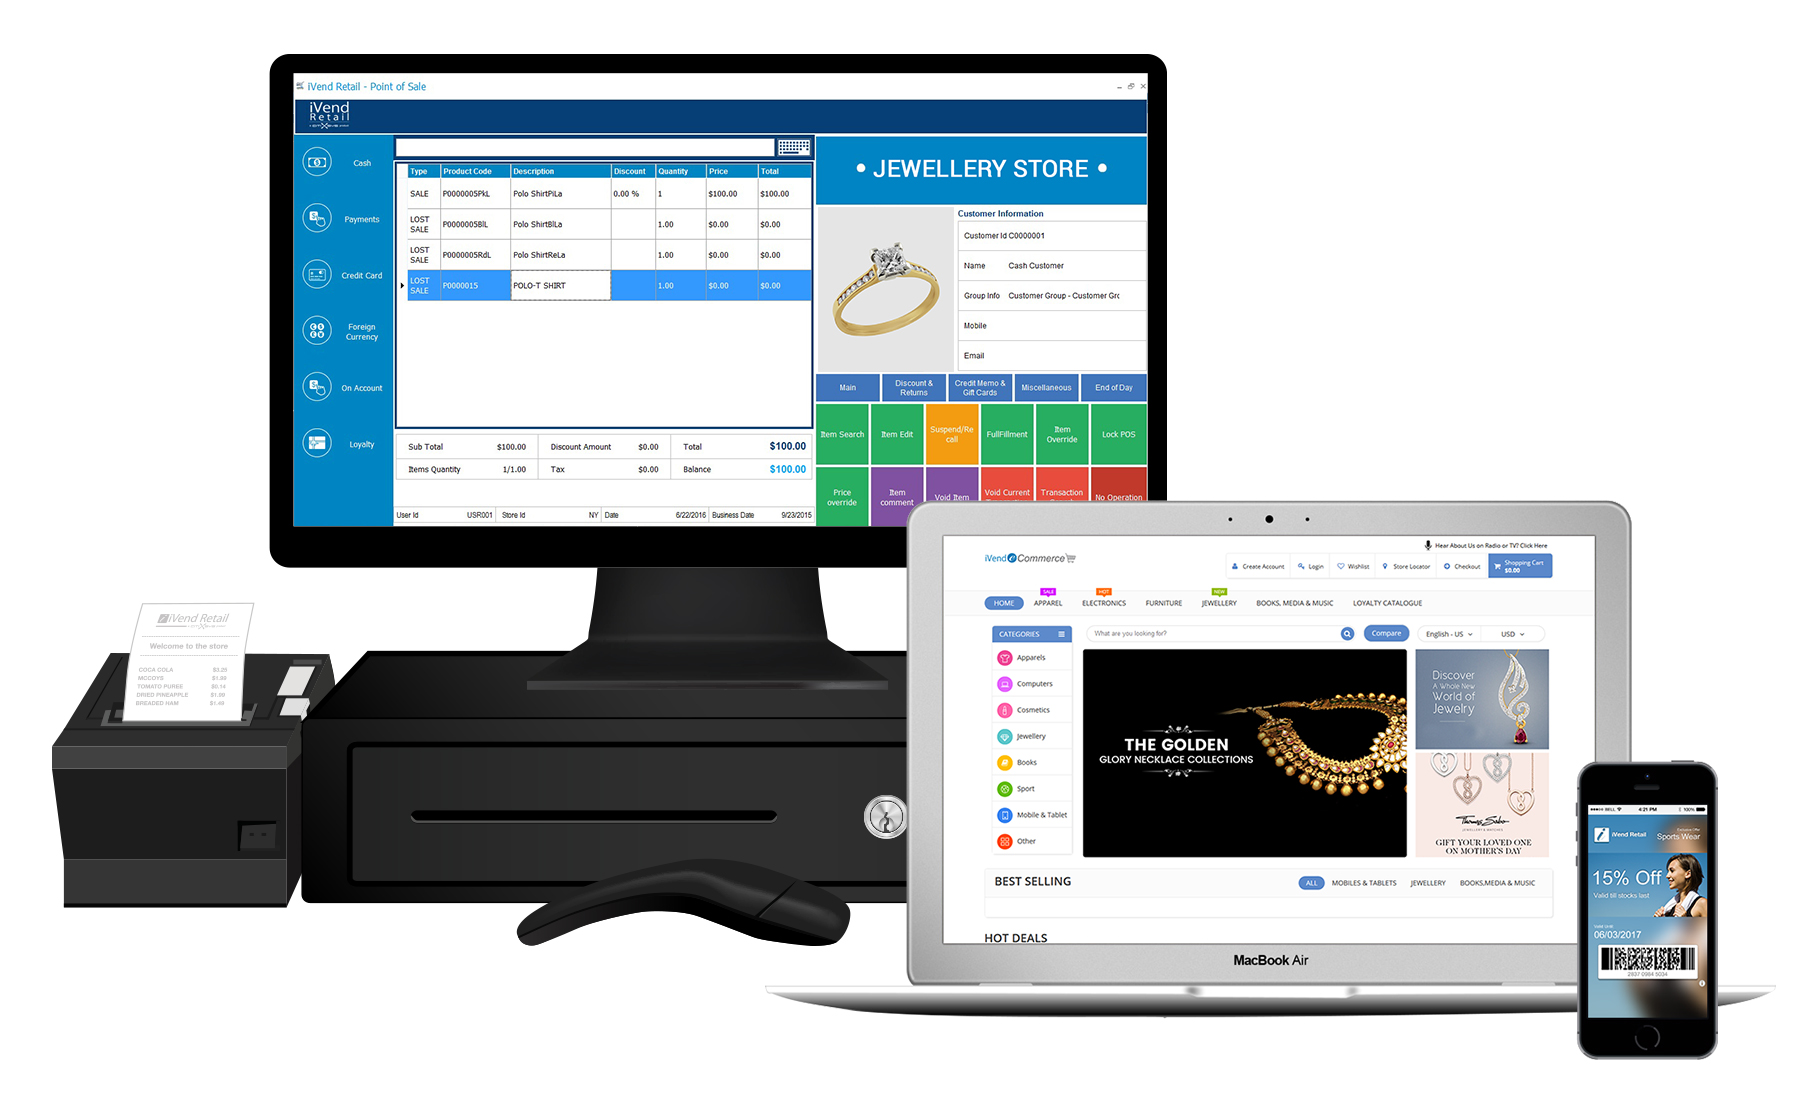 iVend-Jewelry-Vertical-POS